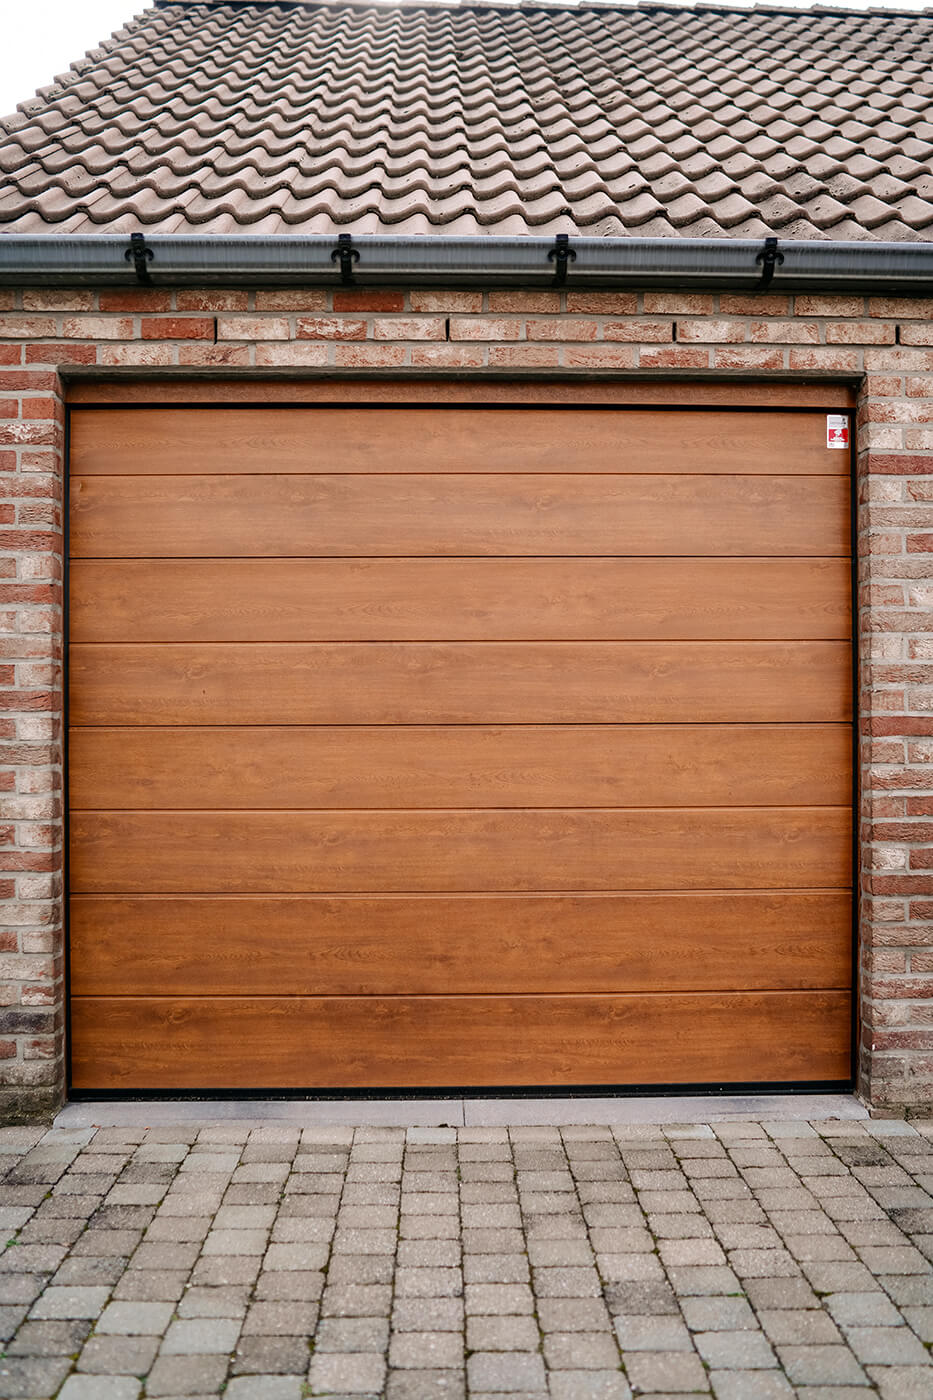 Made-to-measure sectional garage door - Raposo Charleroi, Image n°4